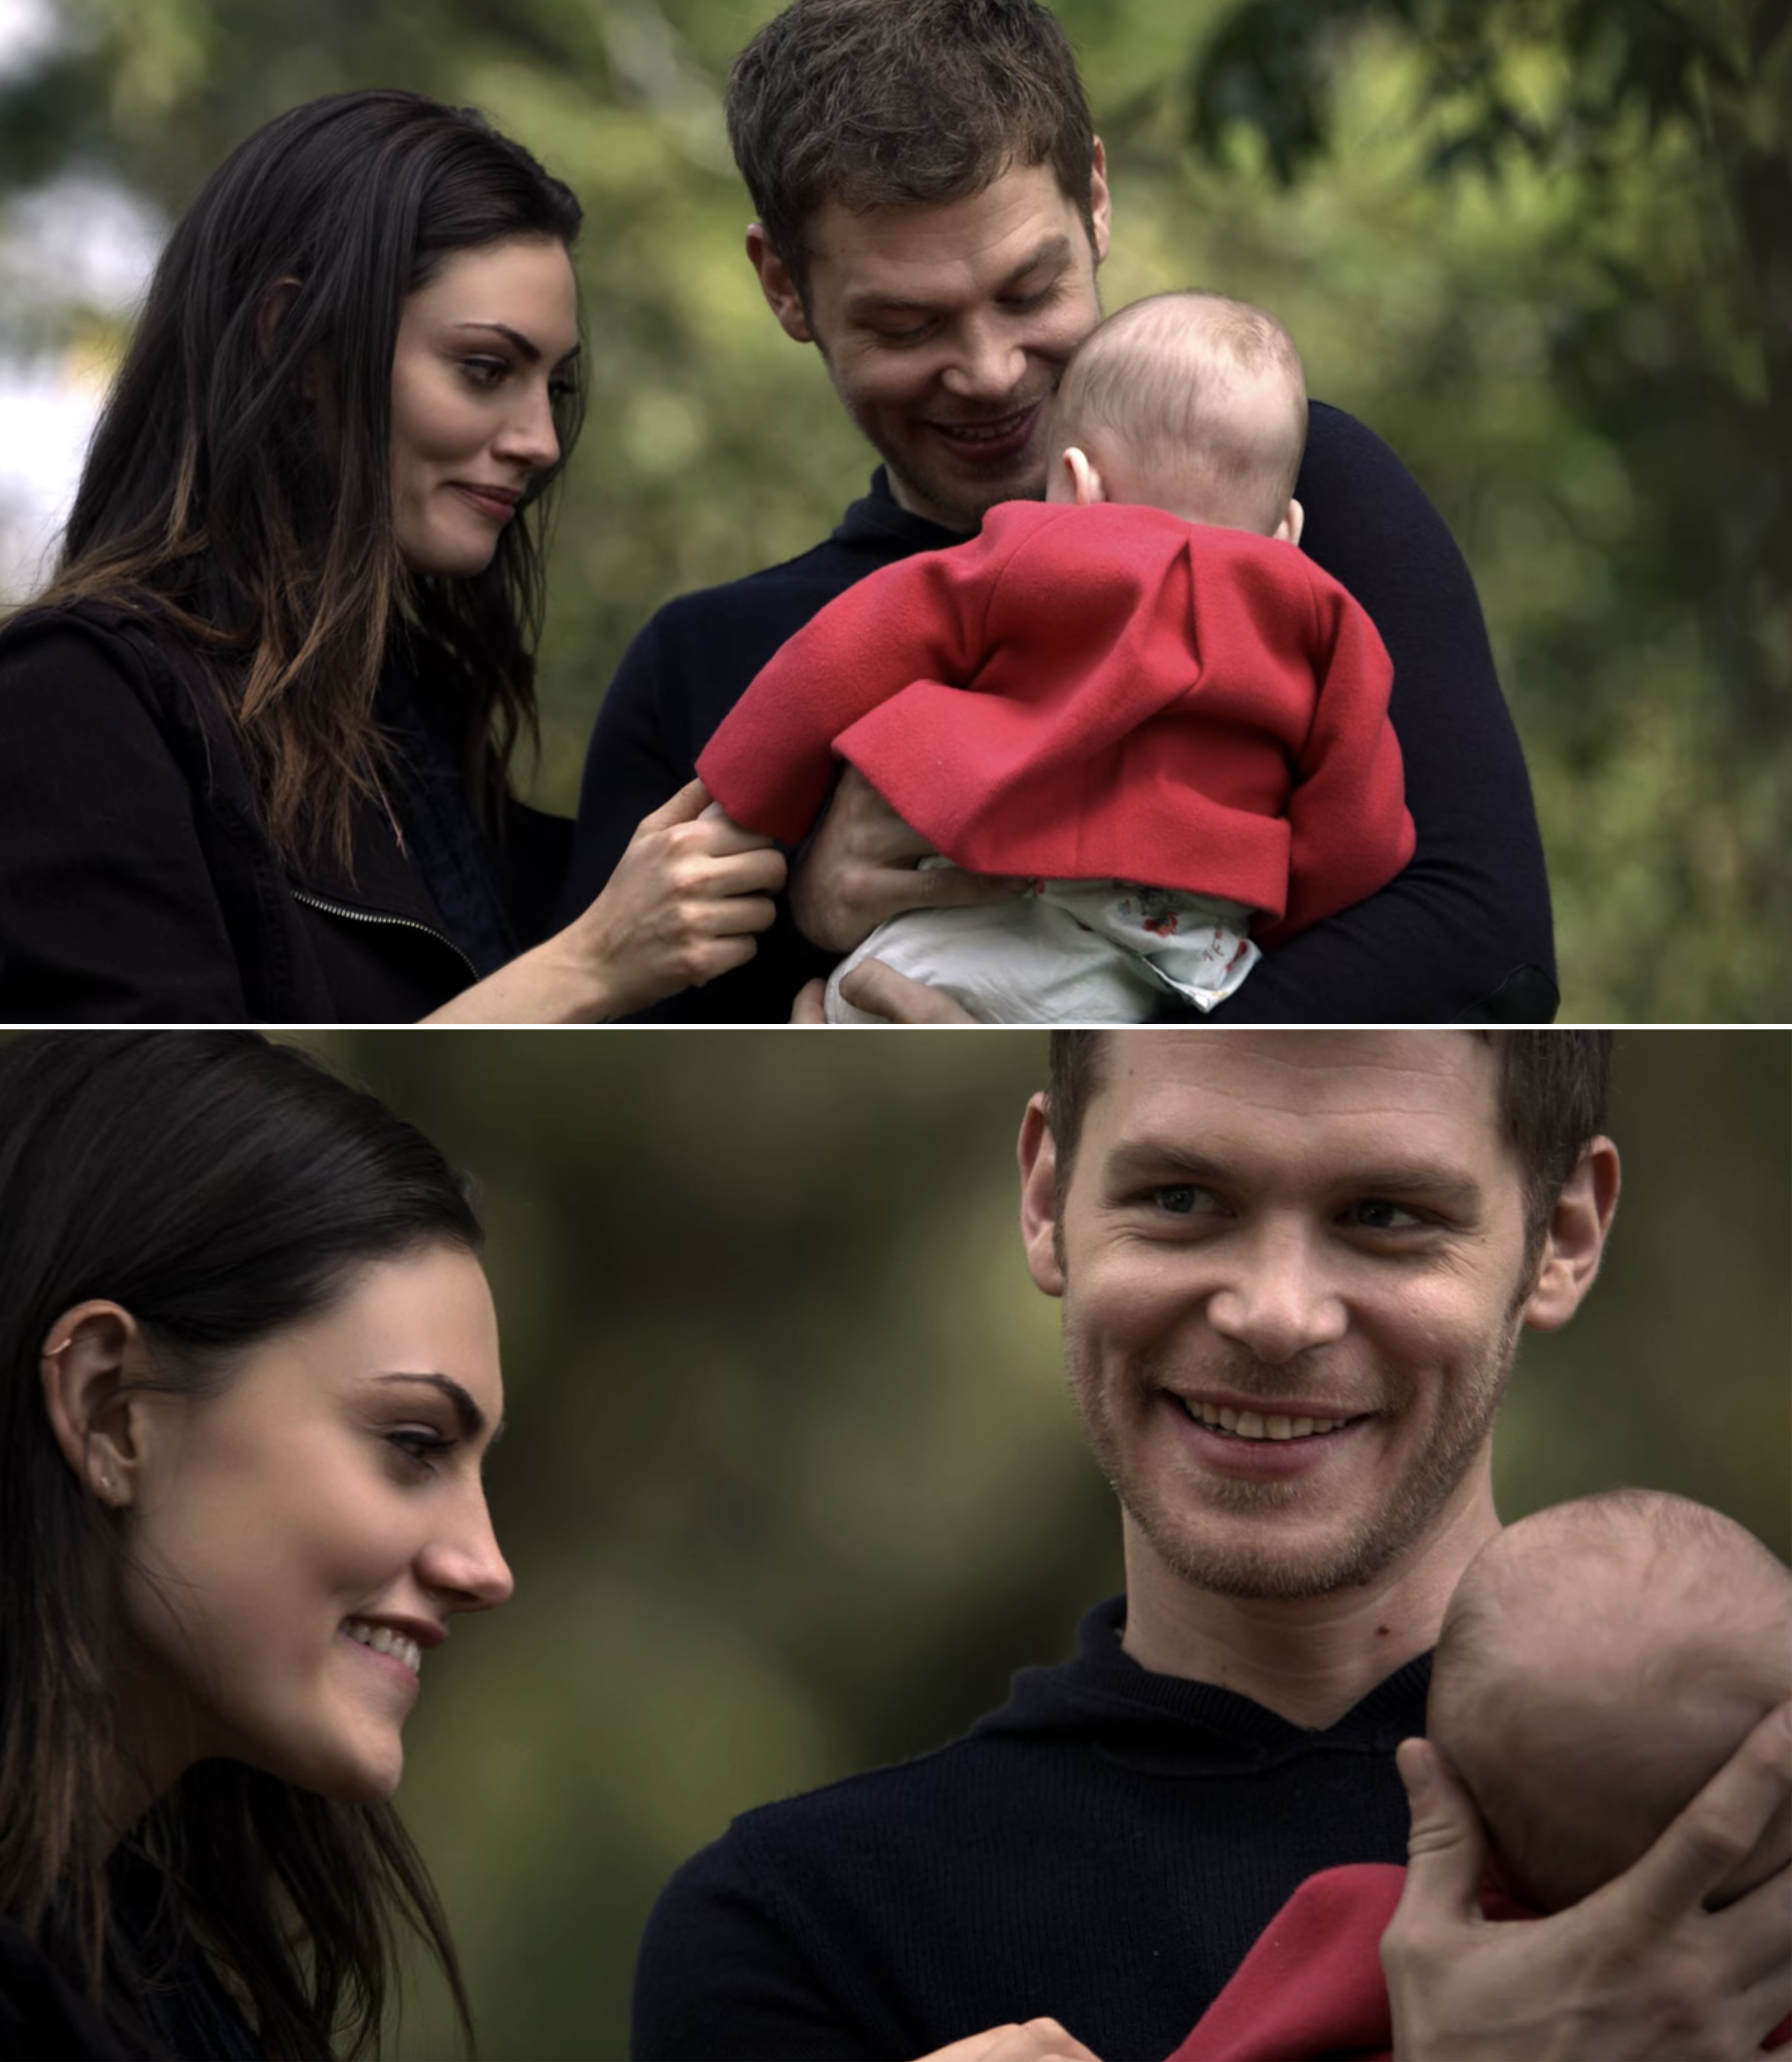 Klaus smiling with Hayley while holding Hope